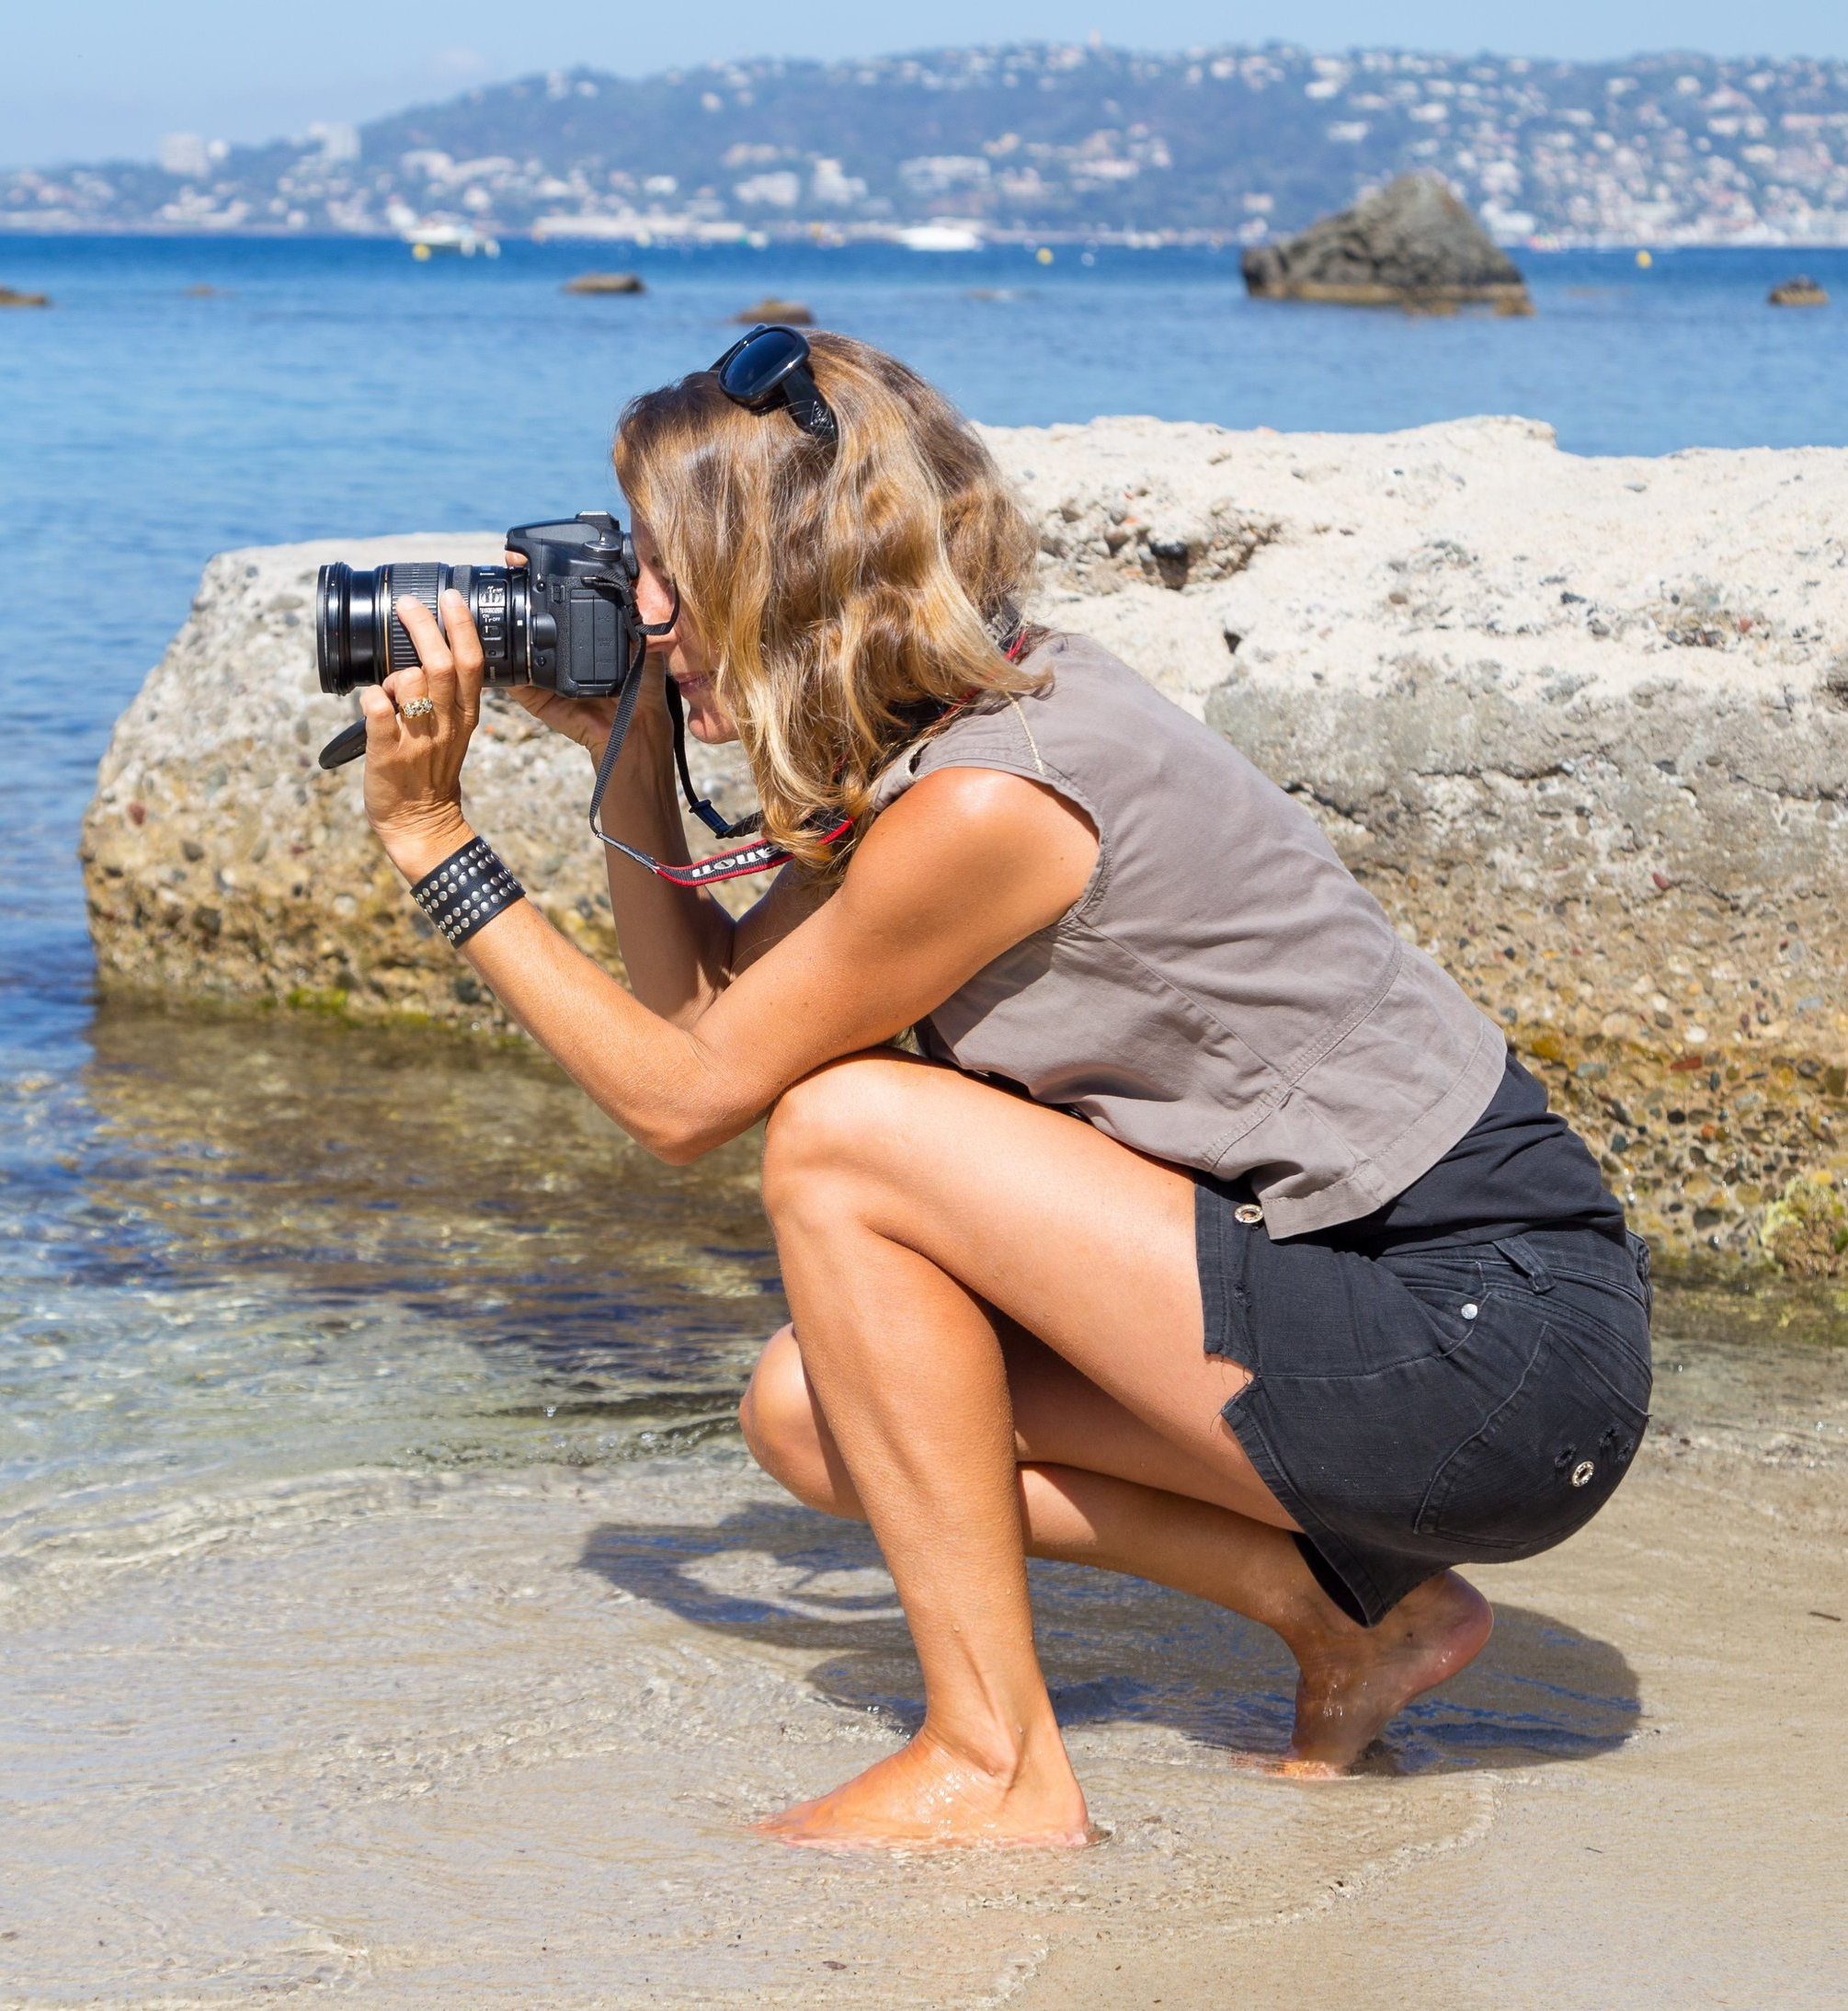 About - I moved to the Cote d'Azur in 2007 from London and then to Cap d'Antibes in 2009. I have been working as a photographer here since 2010 photographing families, children, homes, yachts and events.If something needs photographing then I will photograph it. I am lucky enough to be paid to do what I love which is taking pictures but when I am not attached to my camera, which isn't often, I spend time with my other two loves, my partner and daughter.Aside from my commercial I also launched my blog I Love Cap d'Antibes in 2017. The blog is an outlet for my personal work so feel free to head over there to take a look.